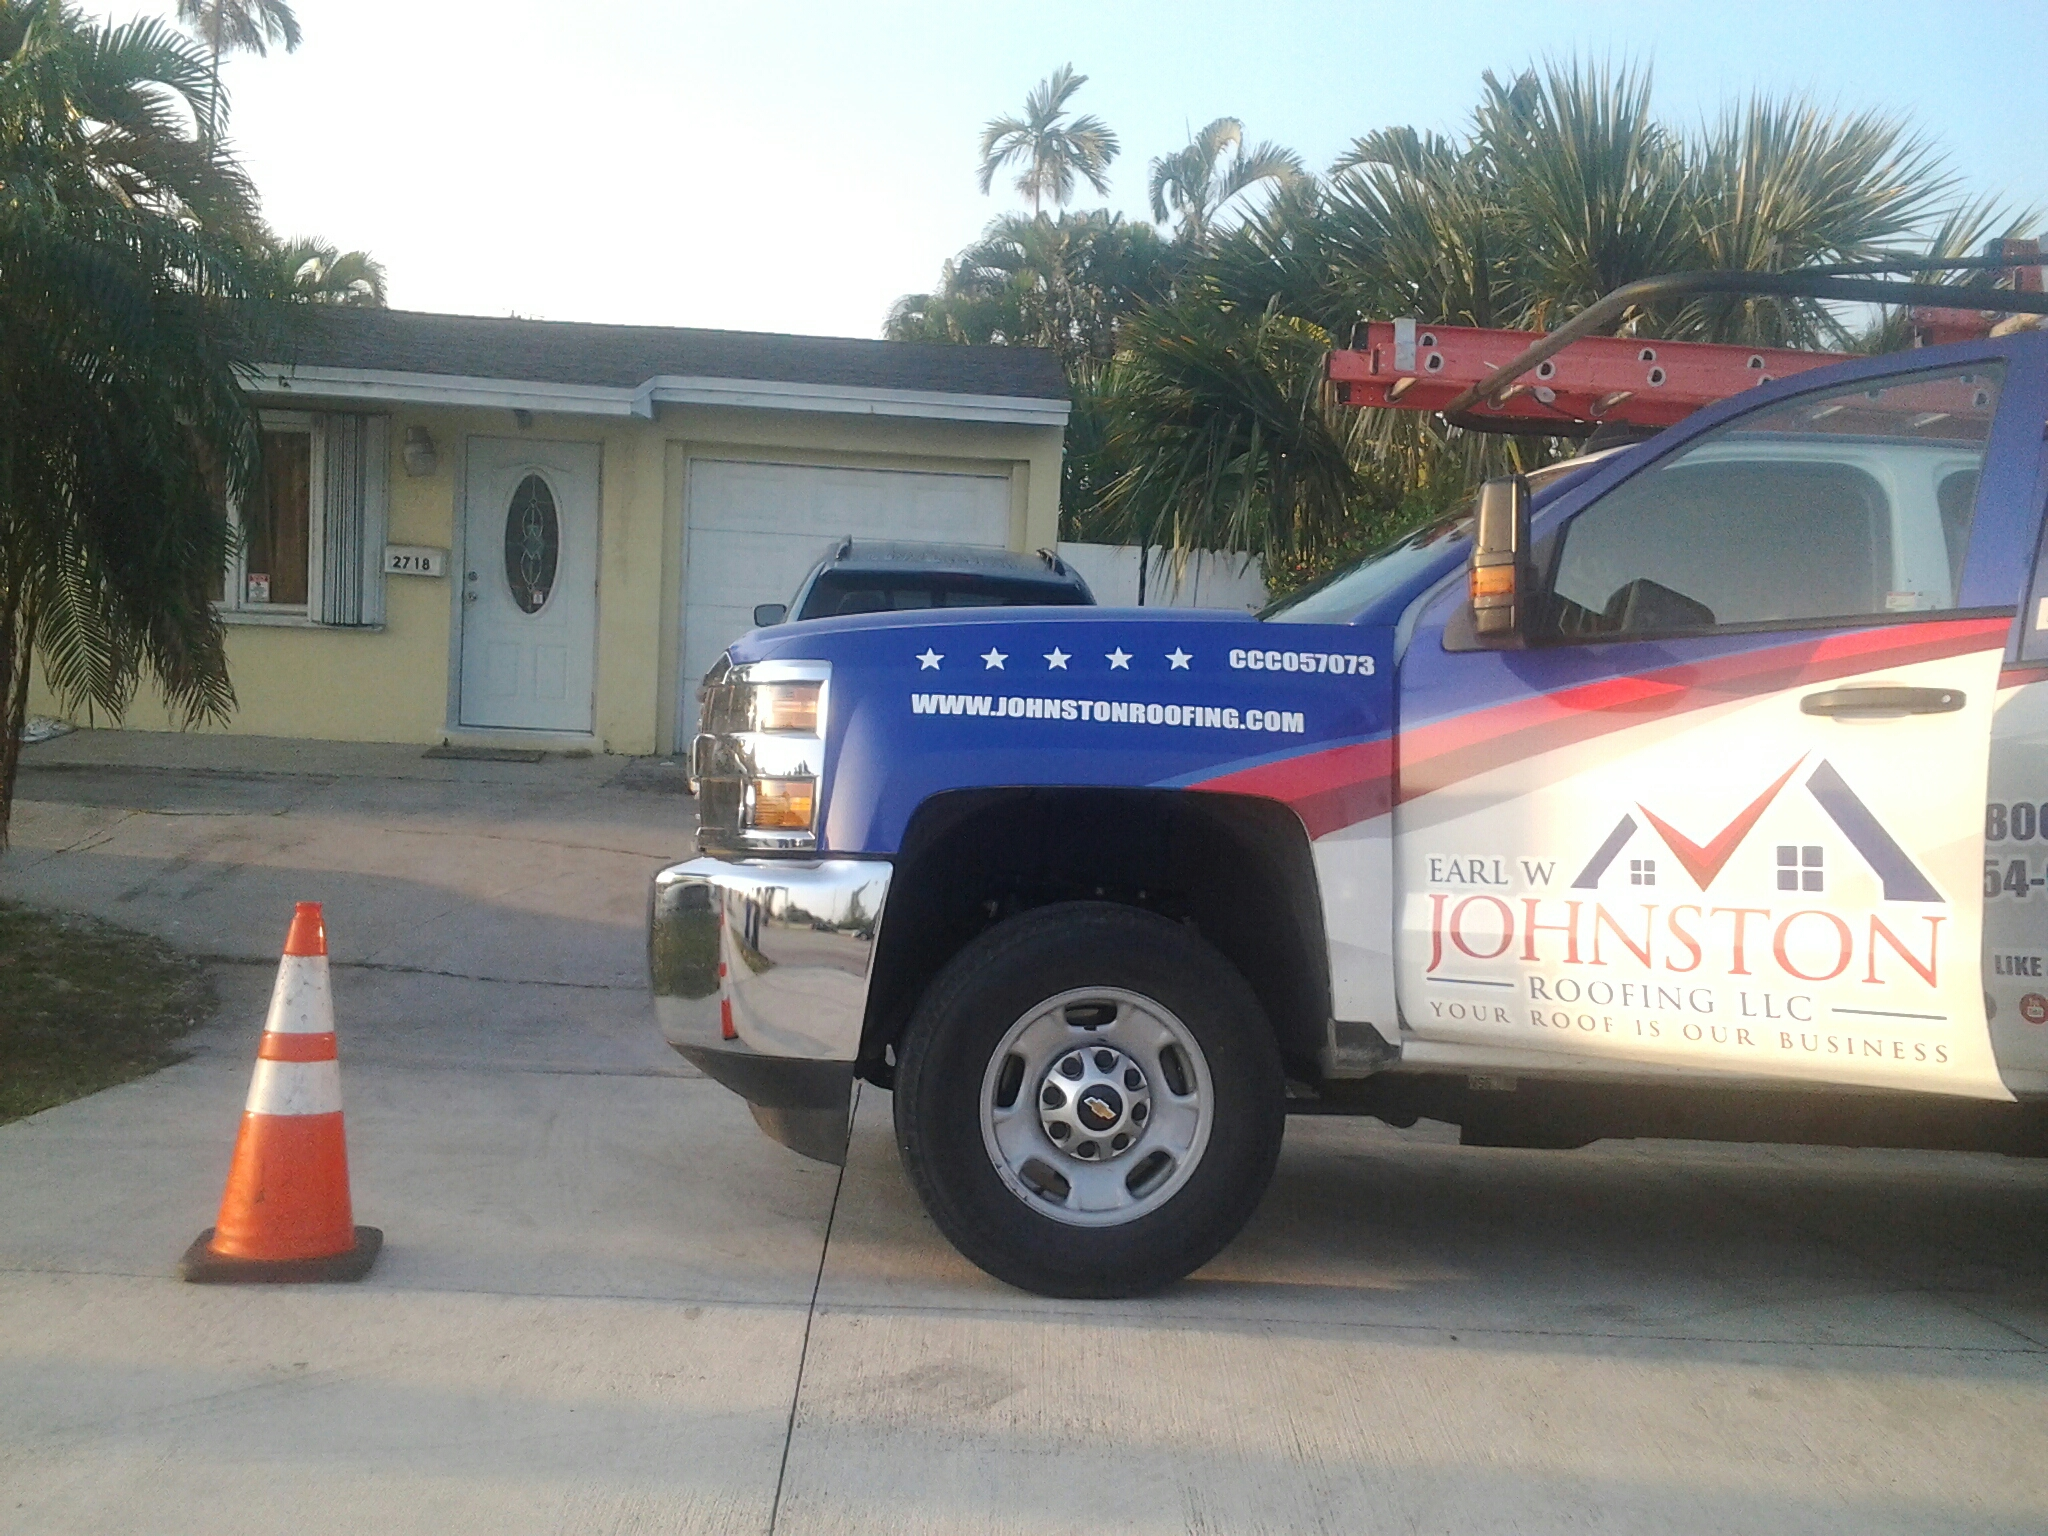 Hollywood, FL - Shingles roof repair in the city of hollywood fl this repair is being done by Earl w Johnston roofing company Jos? end Duane are you repair technicians